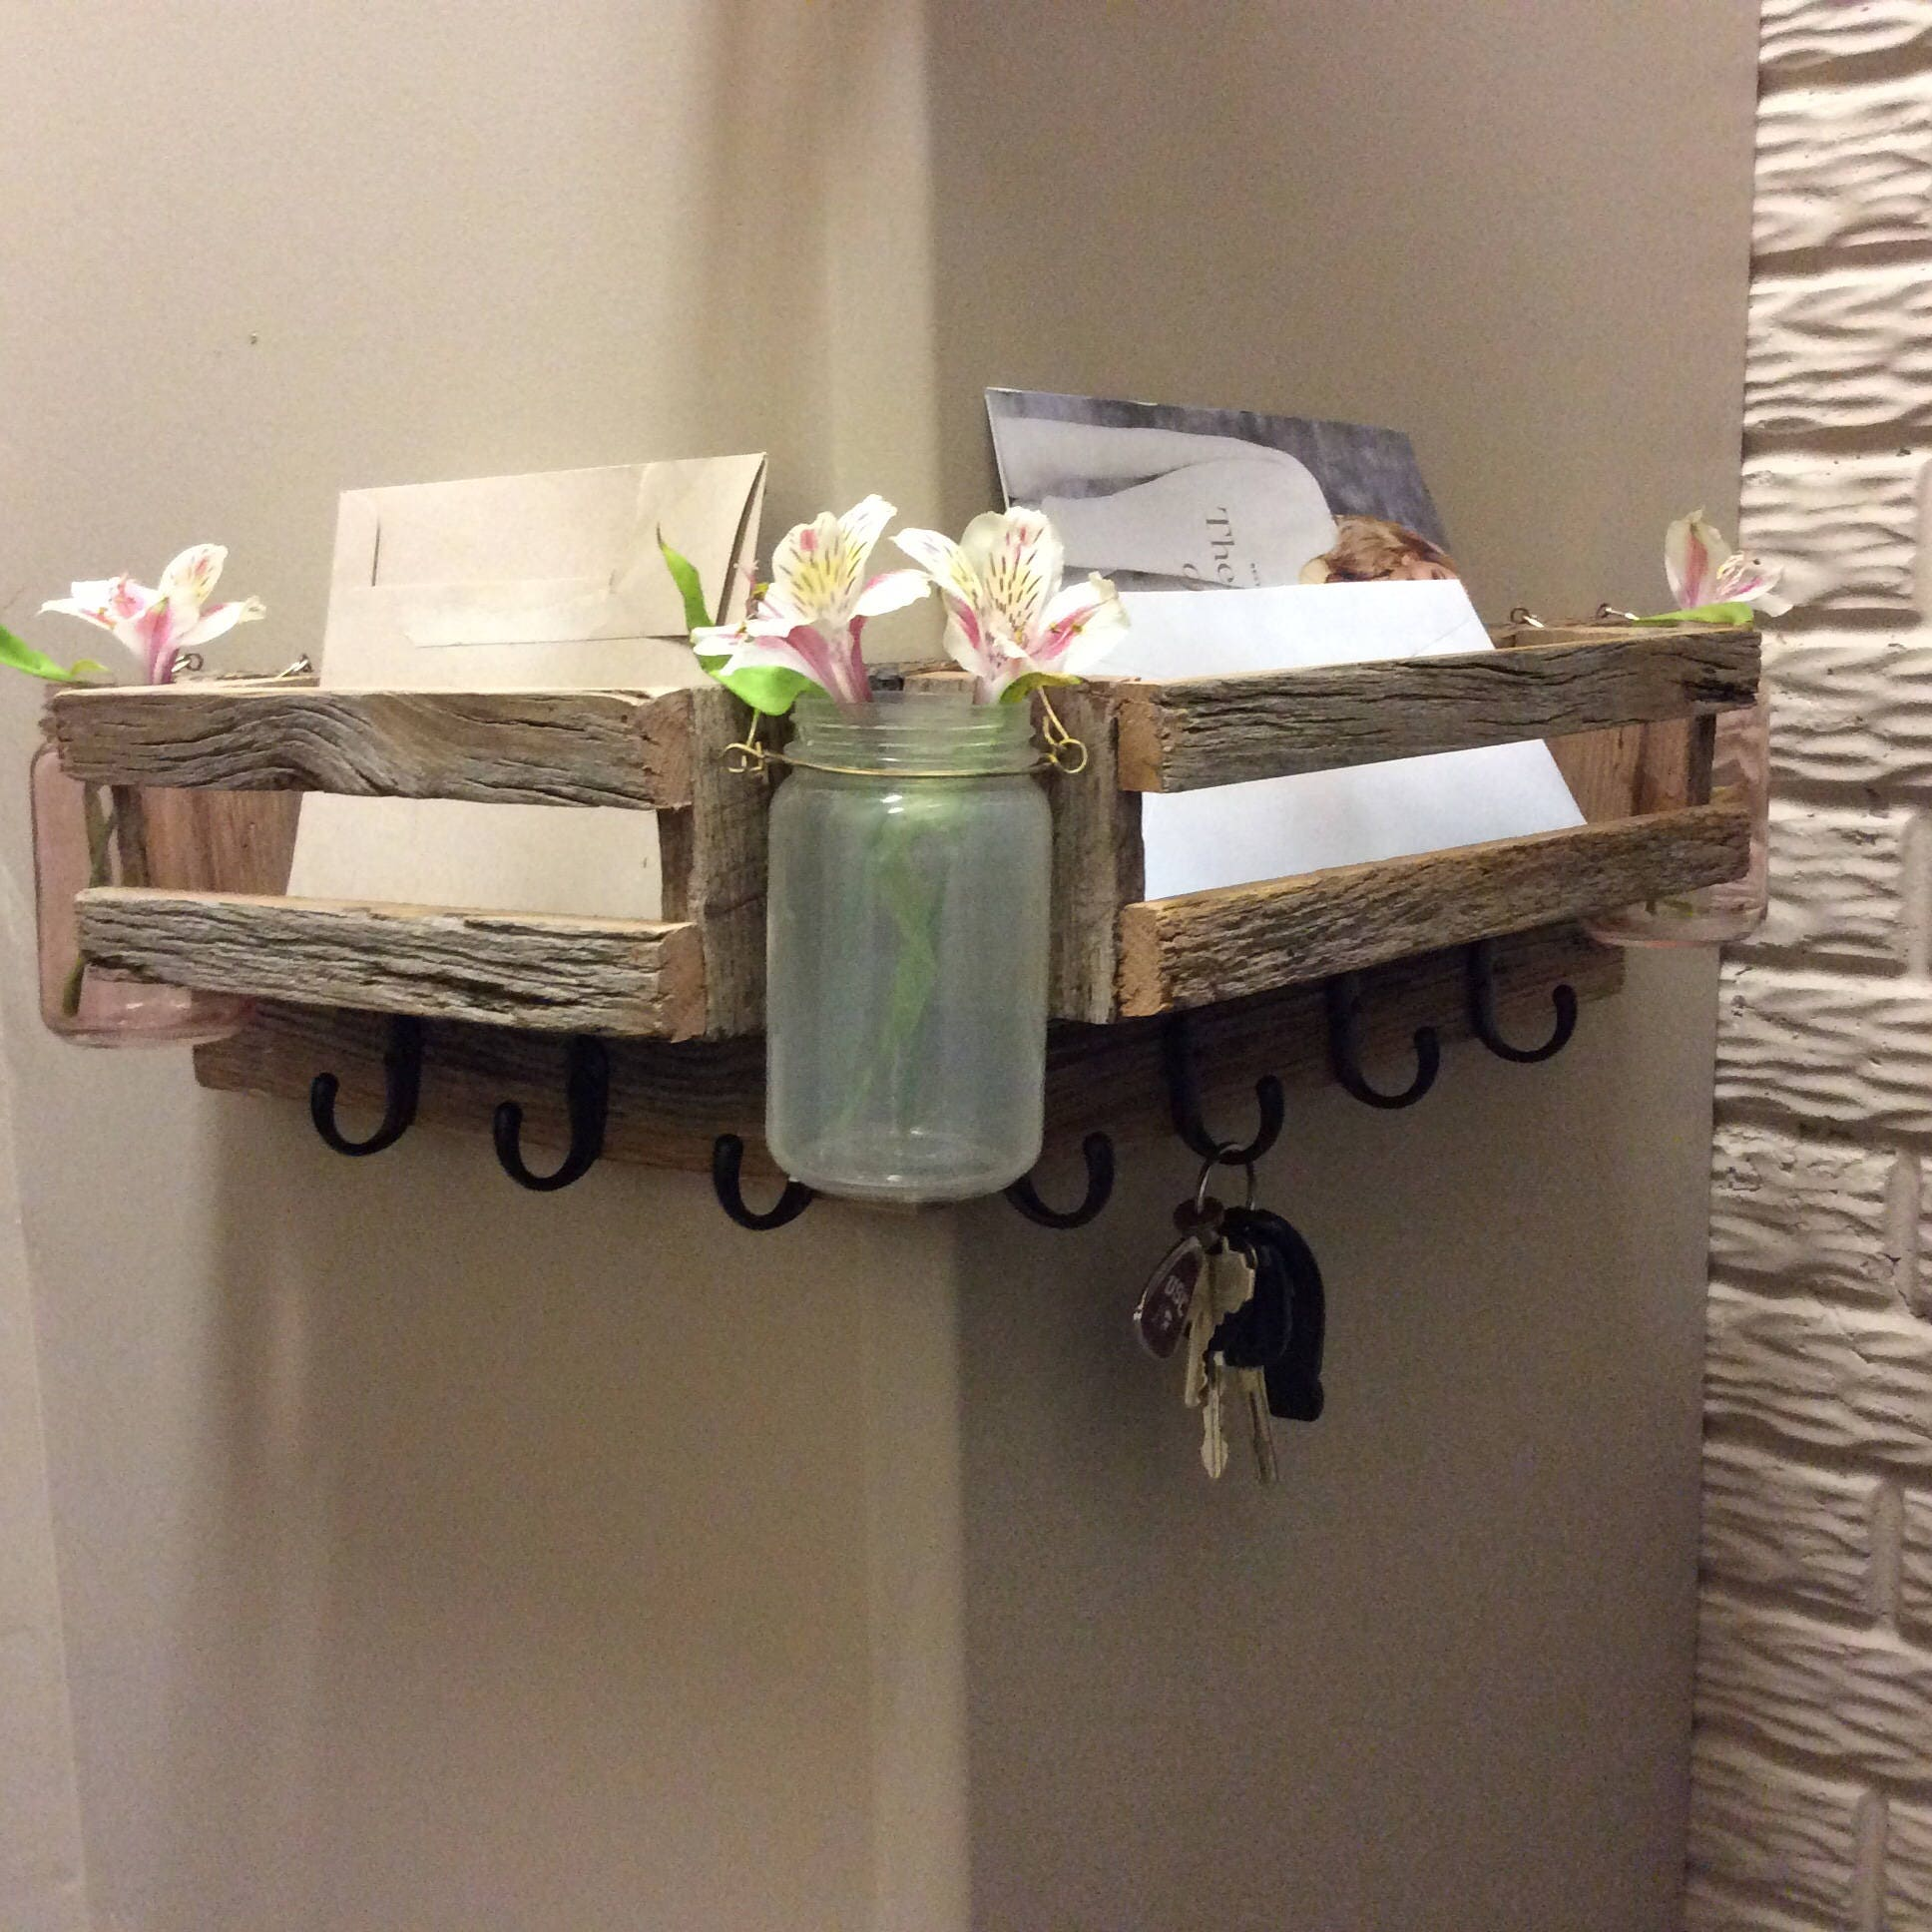 Double Entry Way Wall Mail Organizer with Three Jars mand Center